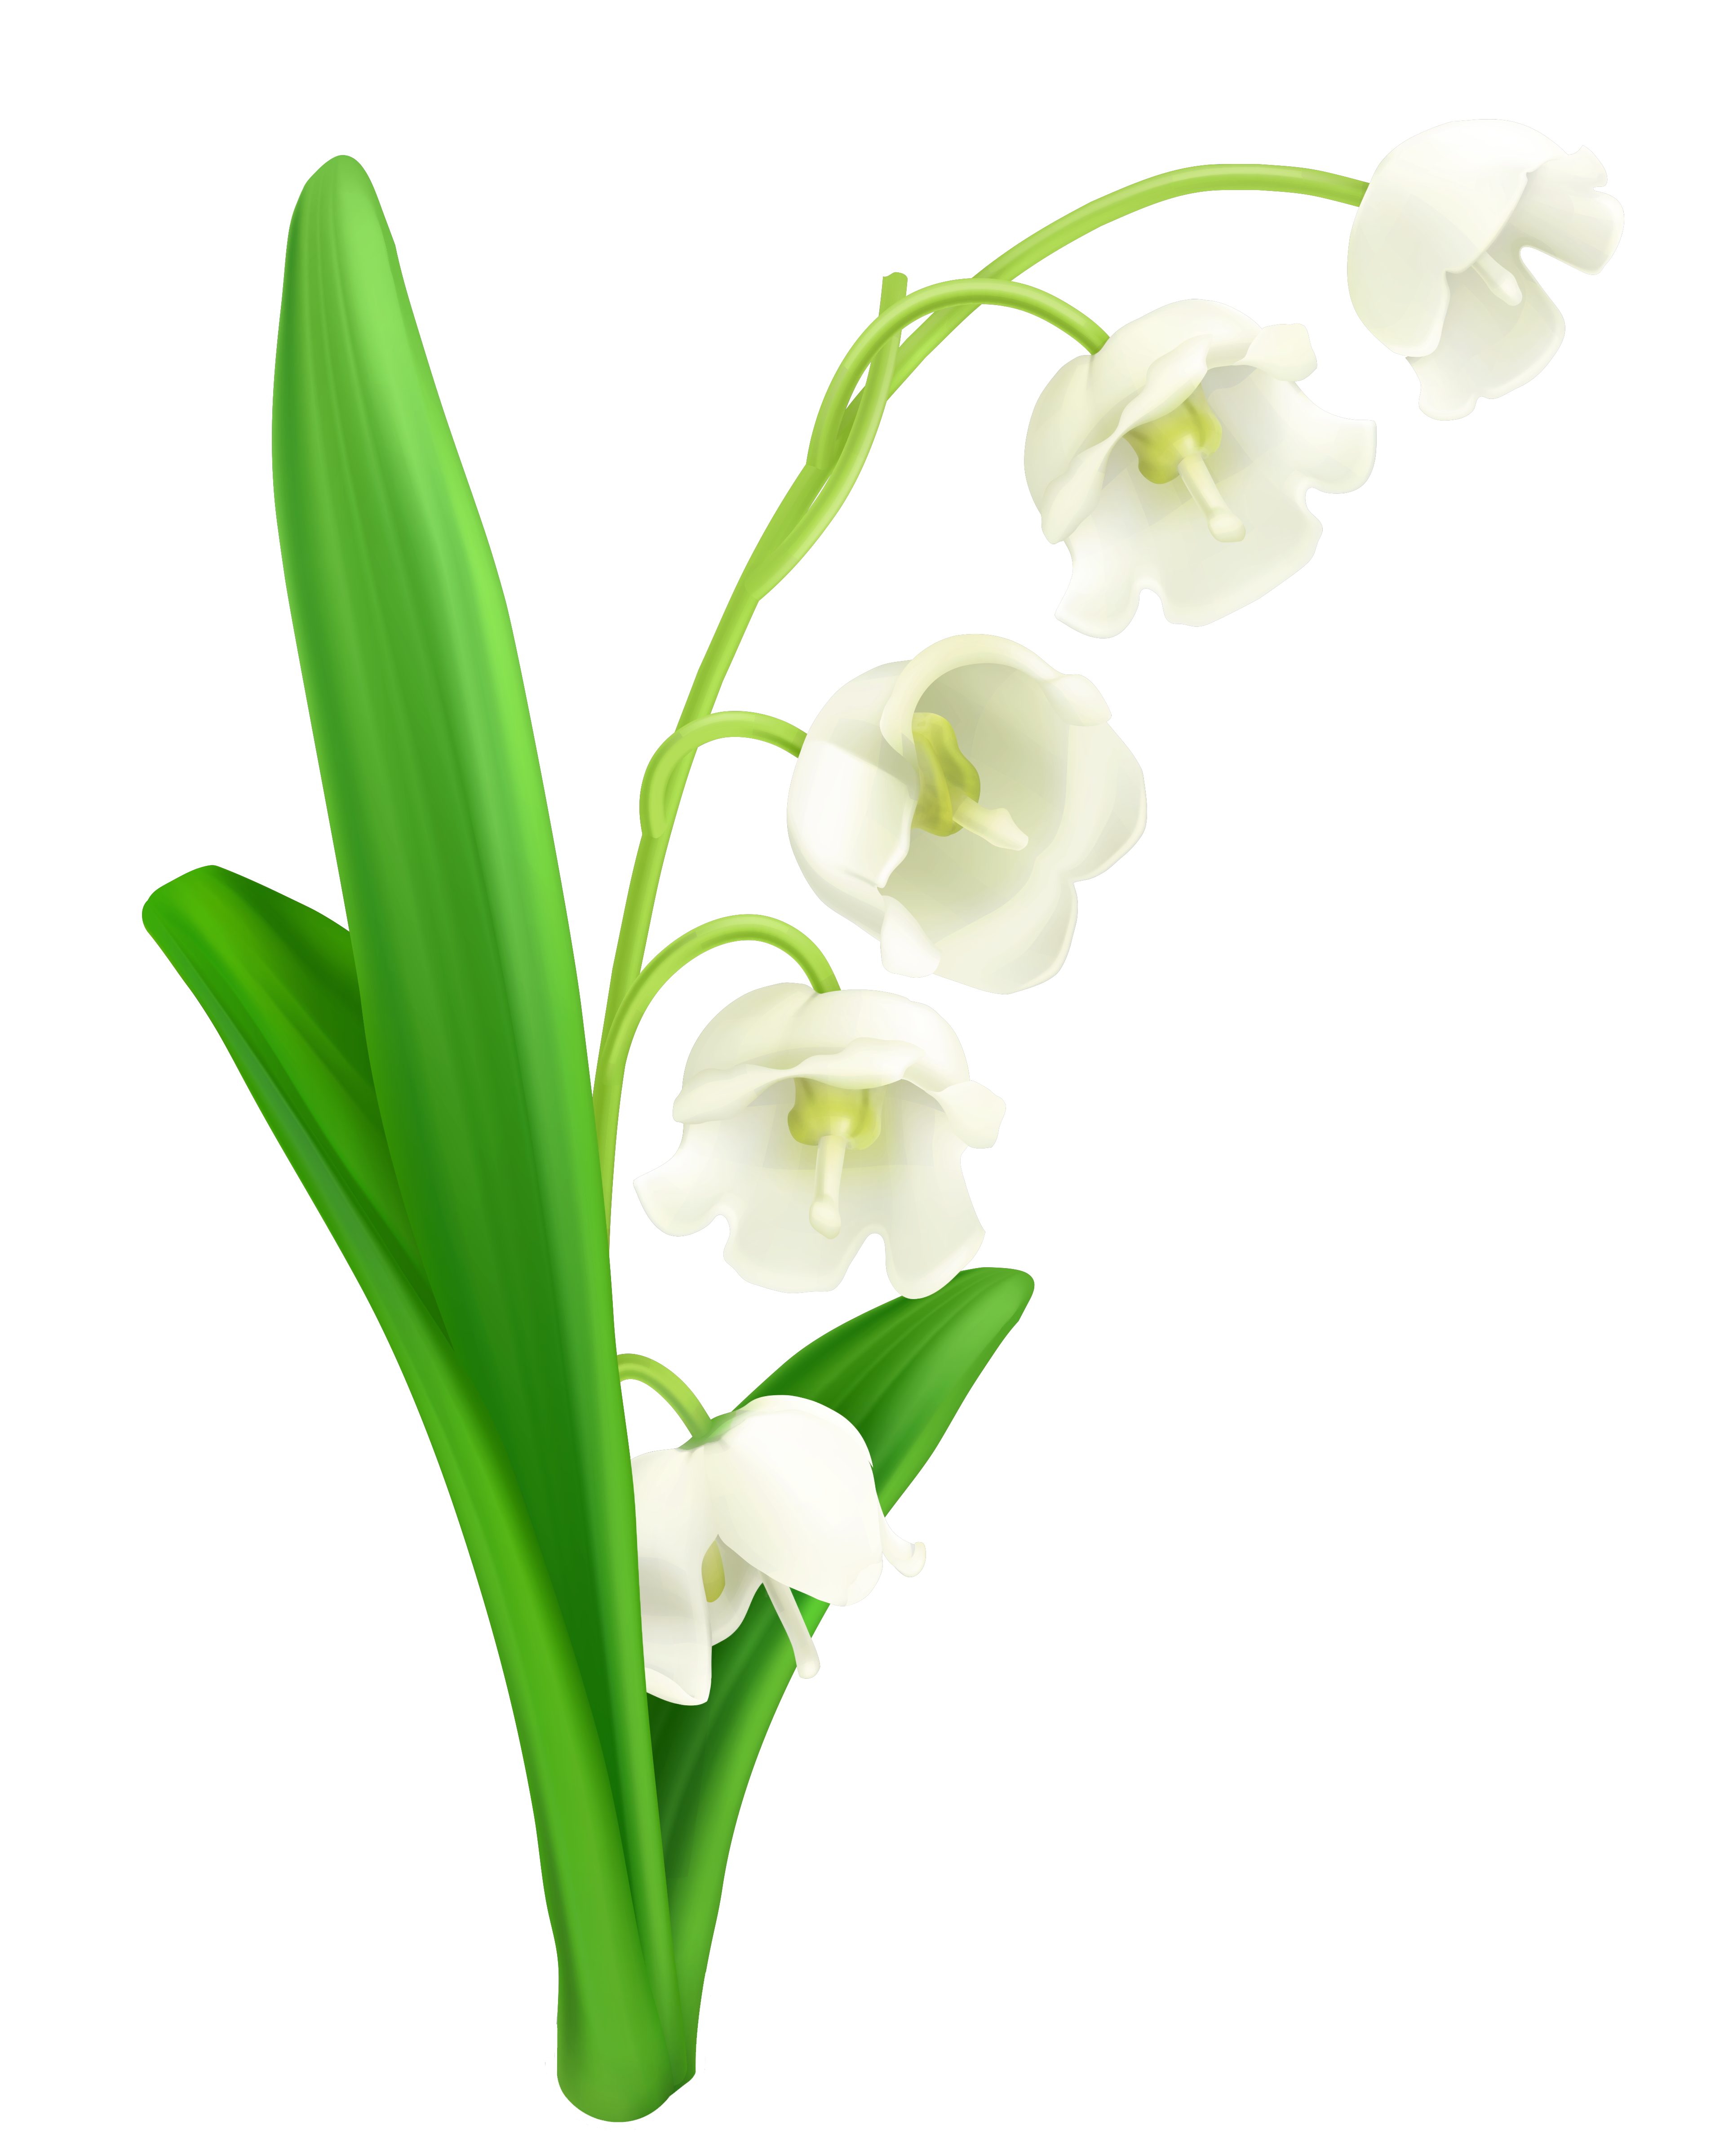 Valley with flowers clipart